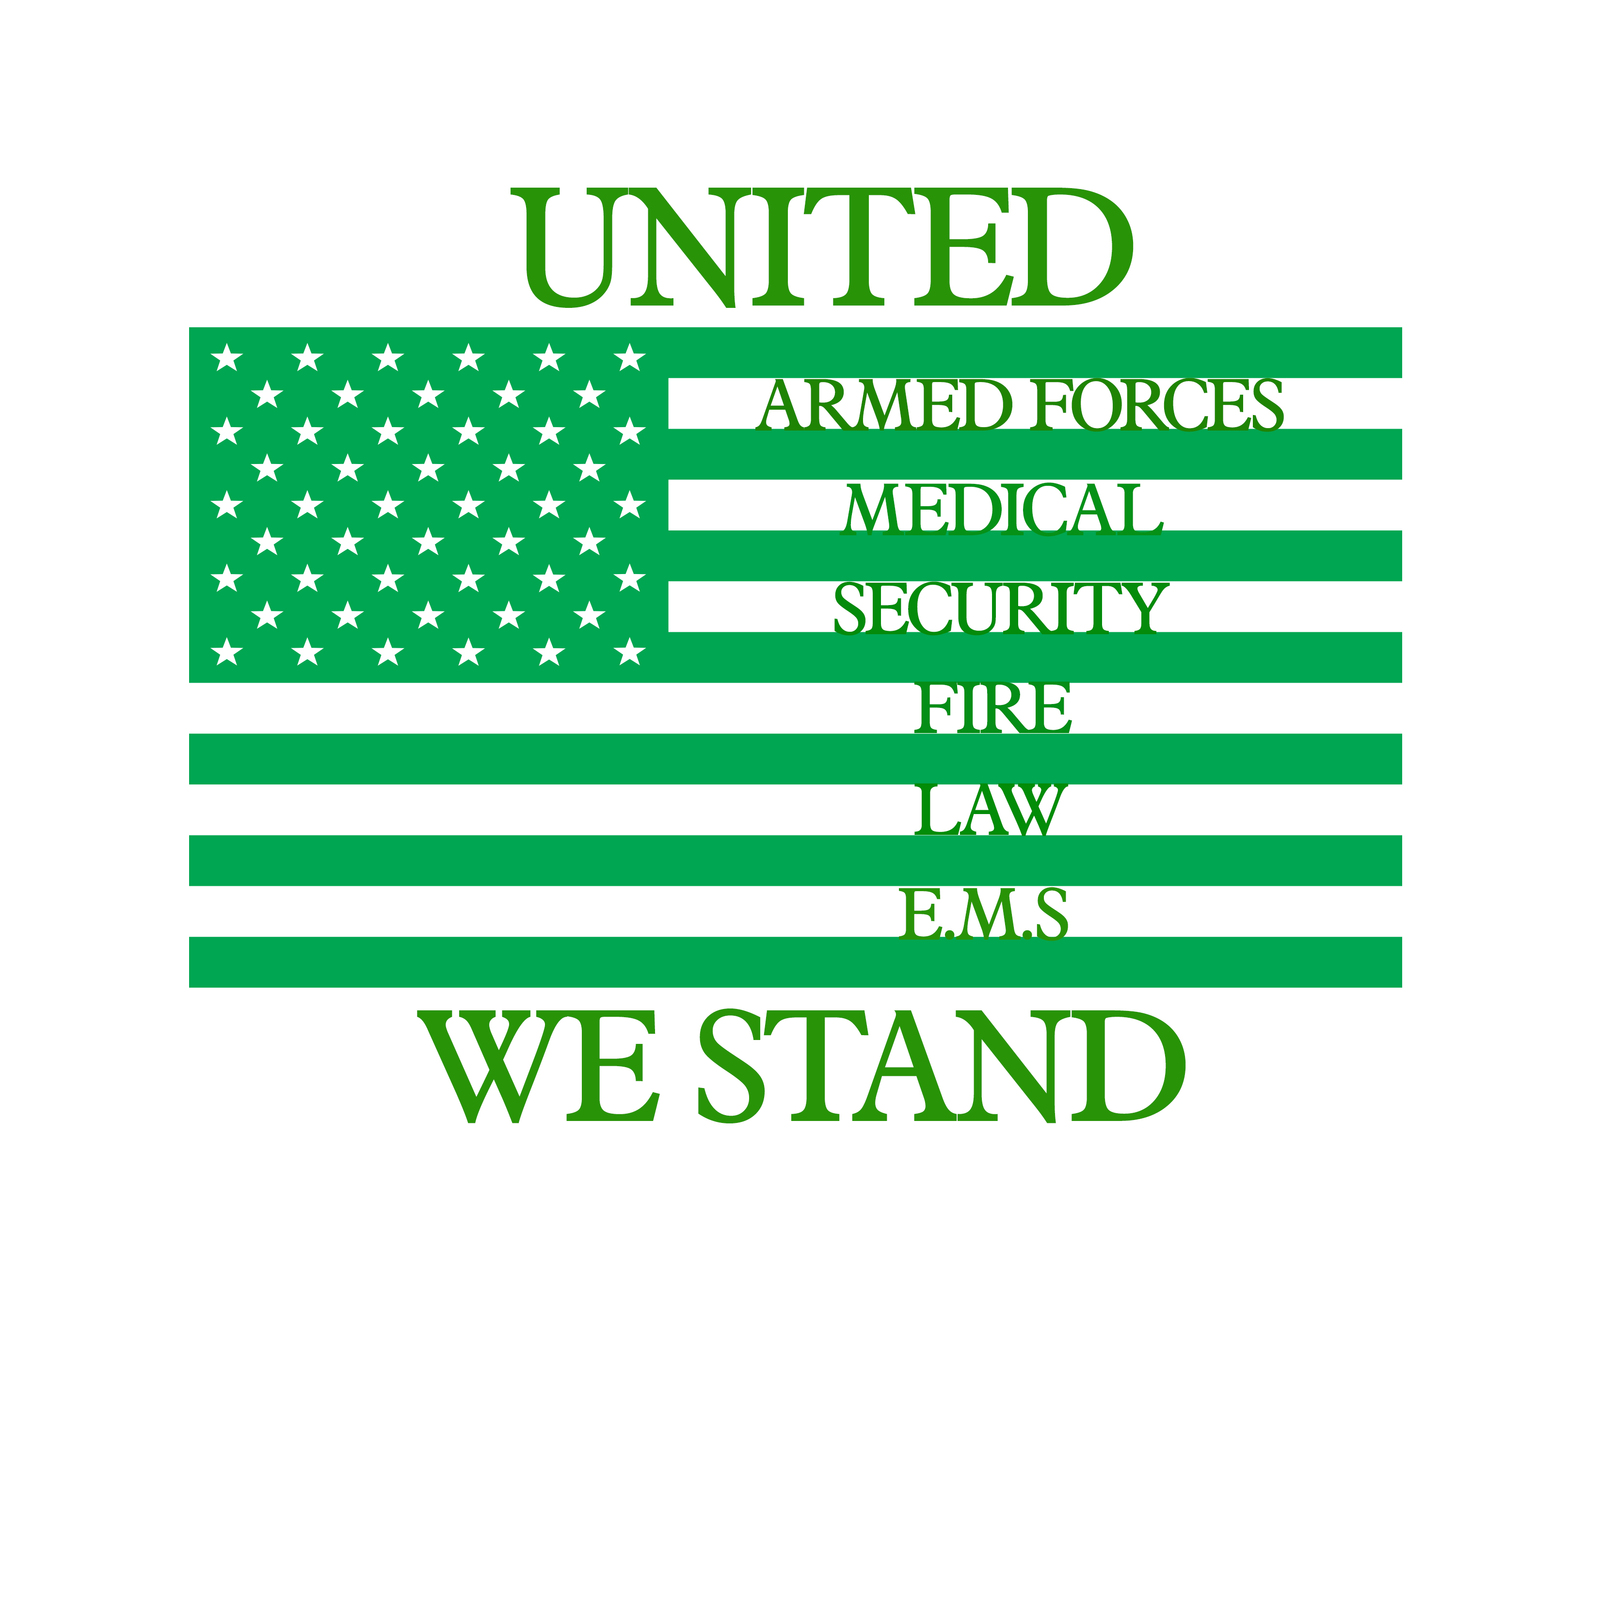 United we stand emergency response teams flag decal awareness sticker